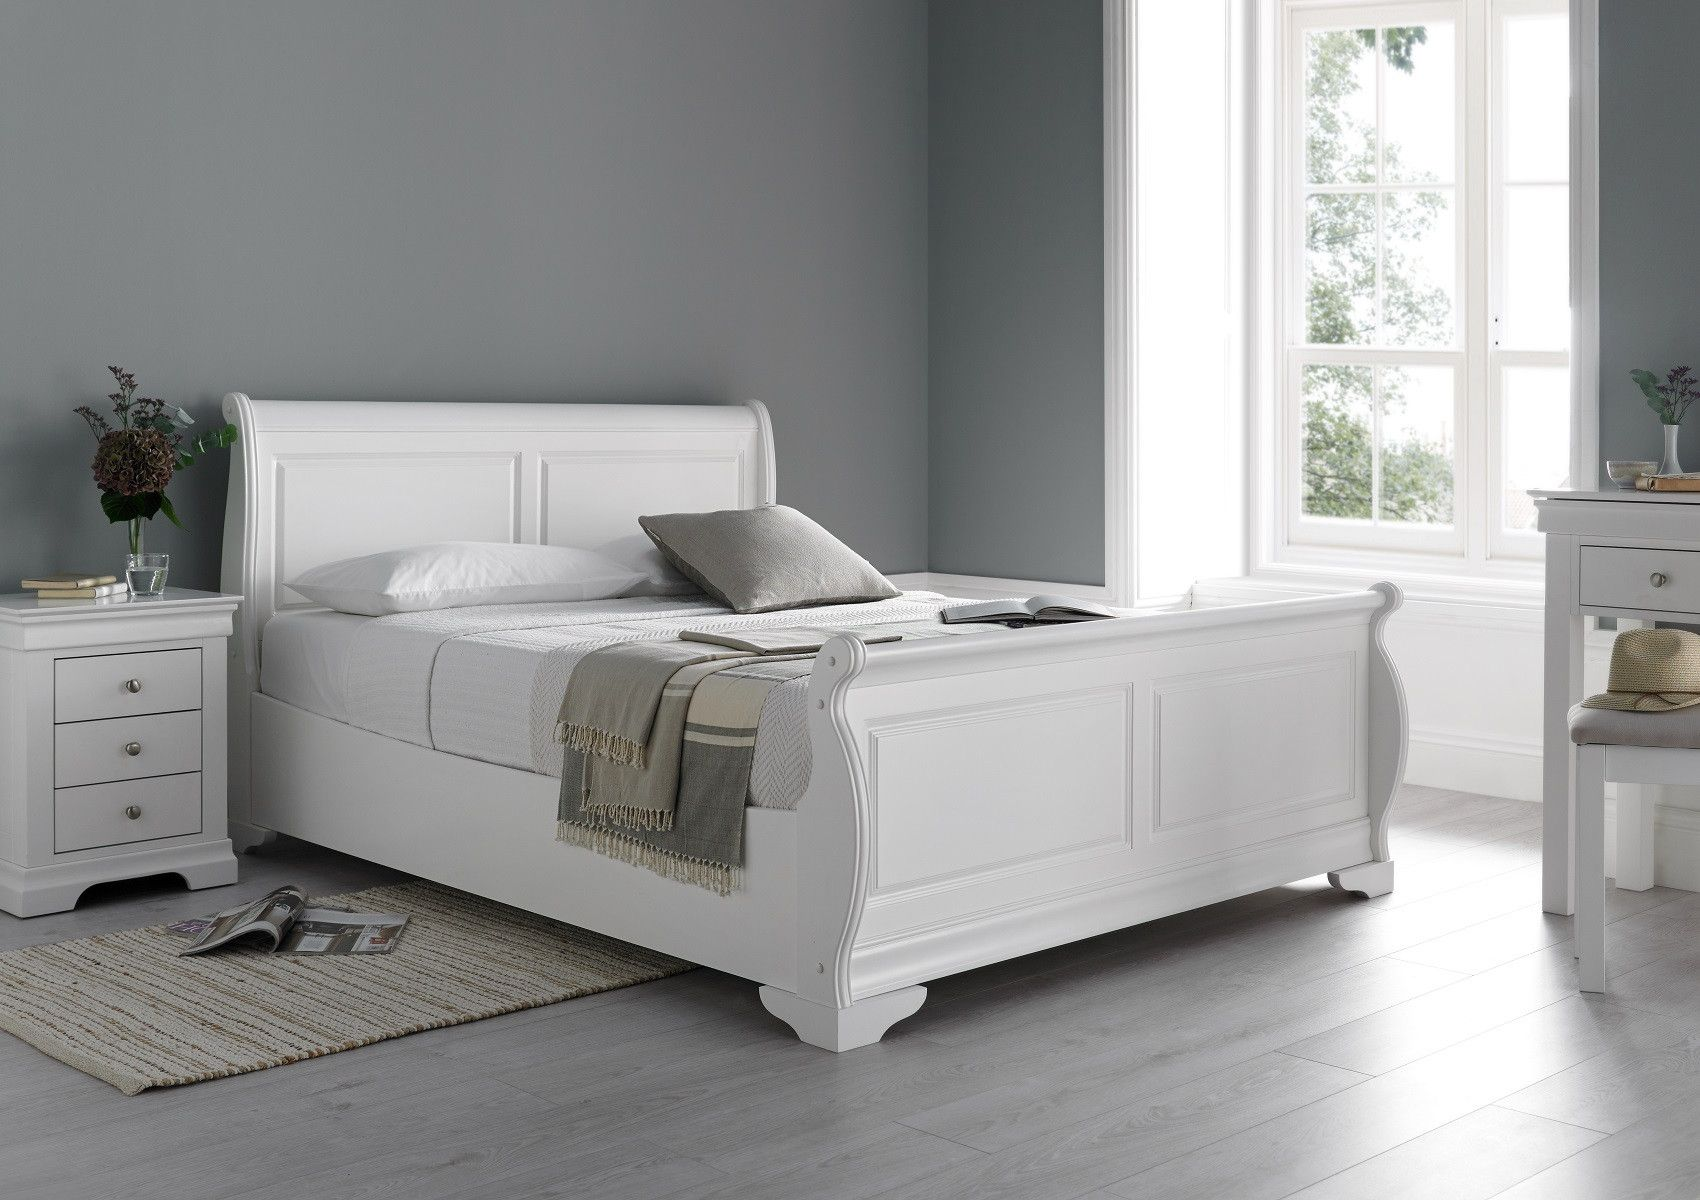 Louie Sleigh Bed - Polar White - NEW  White wooden bed, White bed